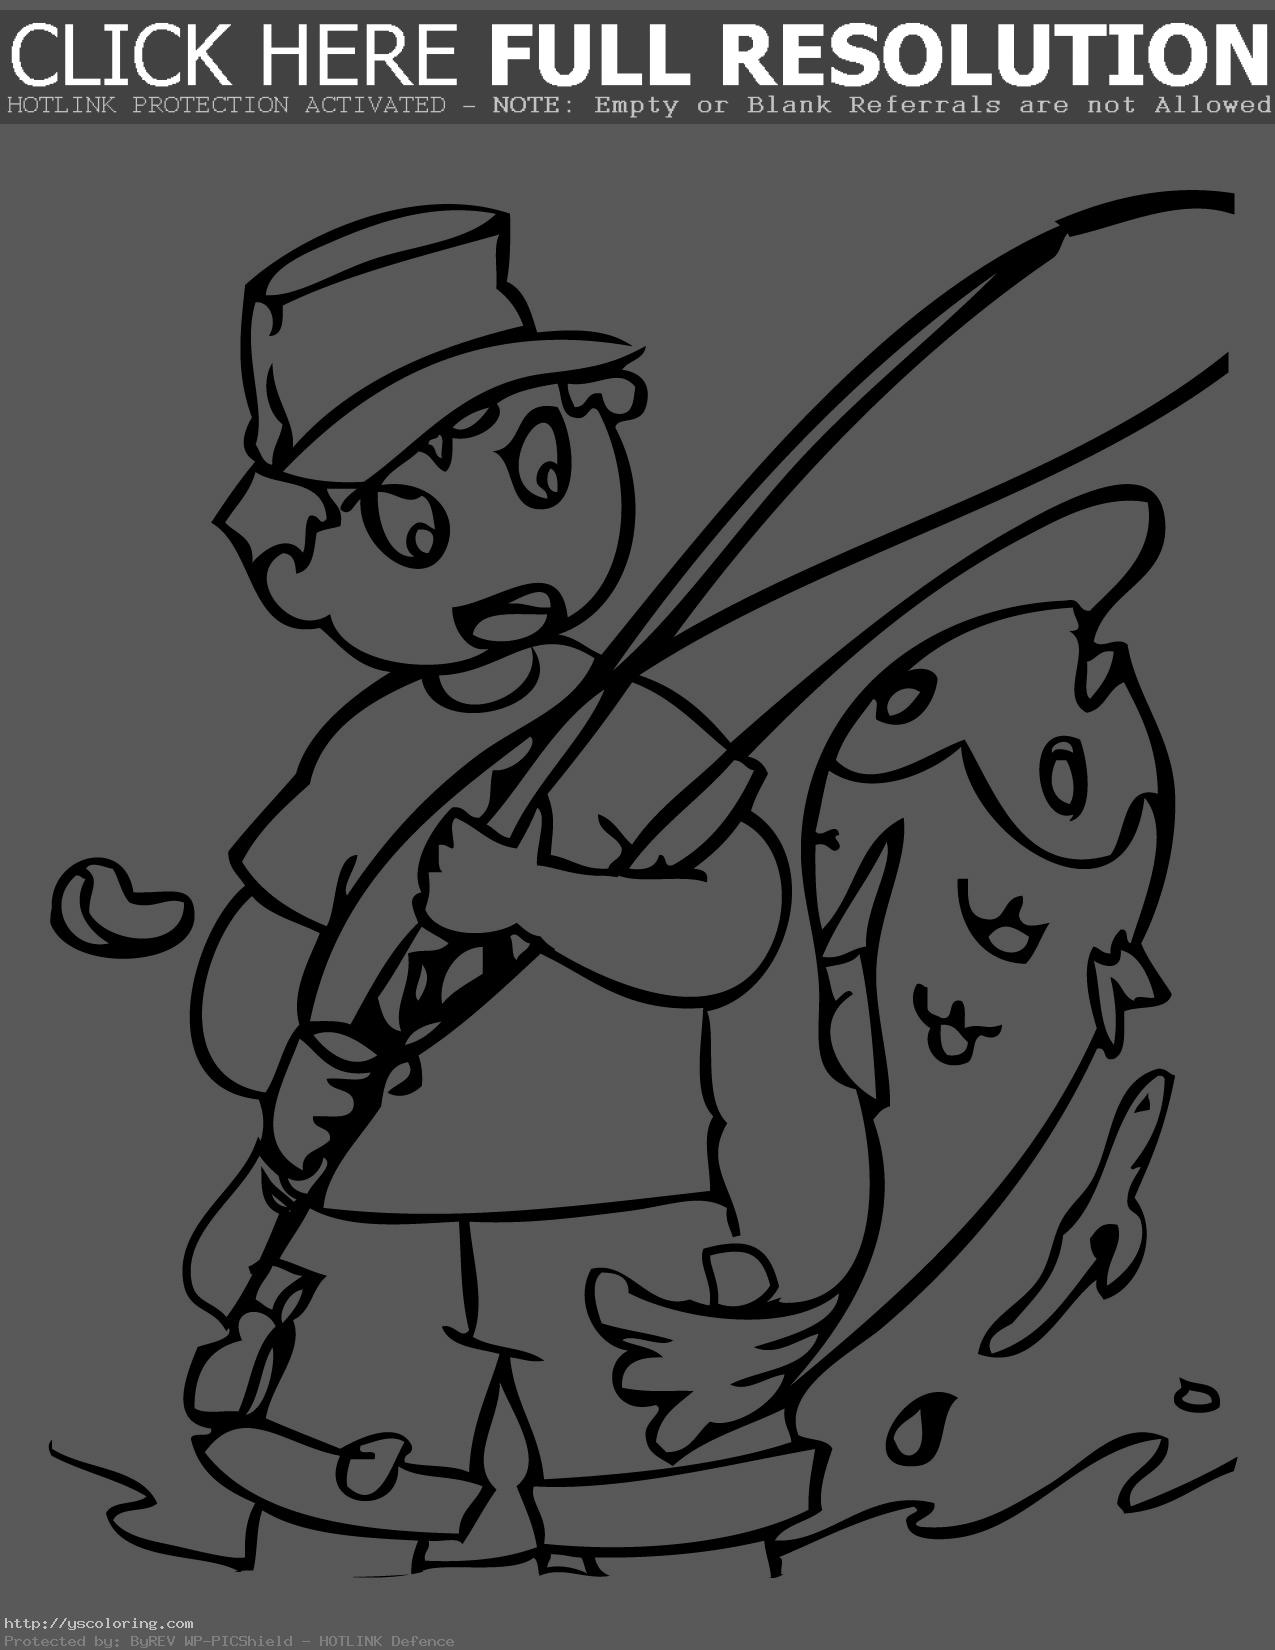 Bass Fish Coloring Pages | Clipart Panda - Free Clipart Images